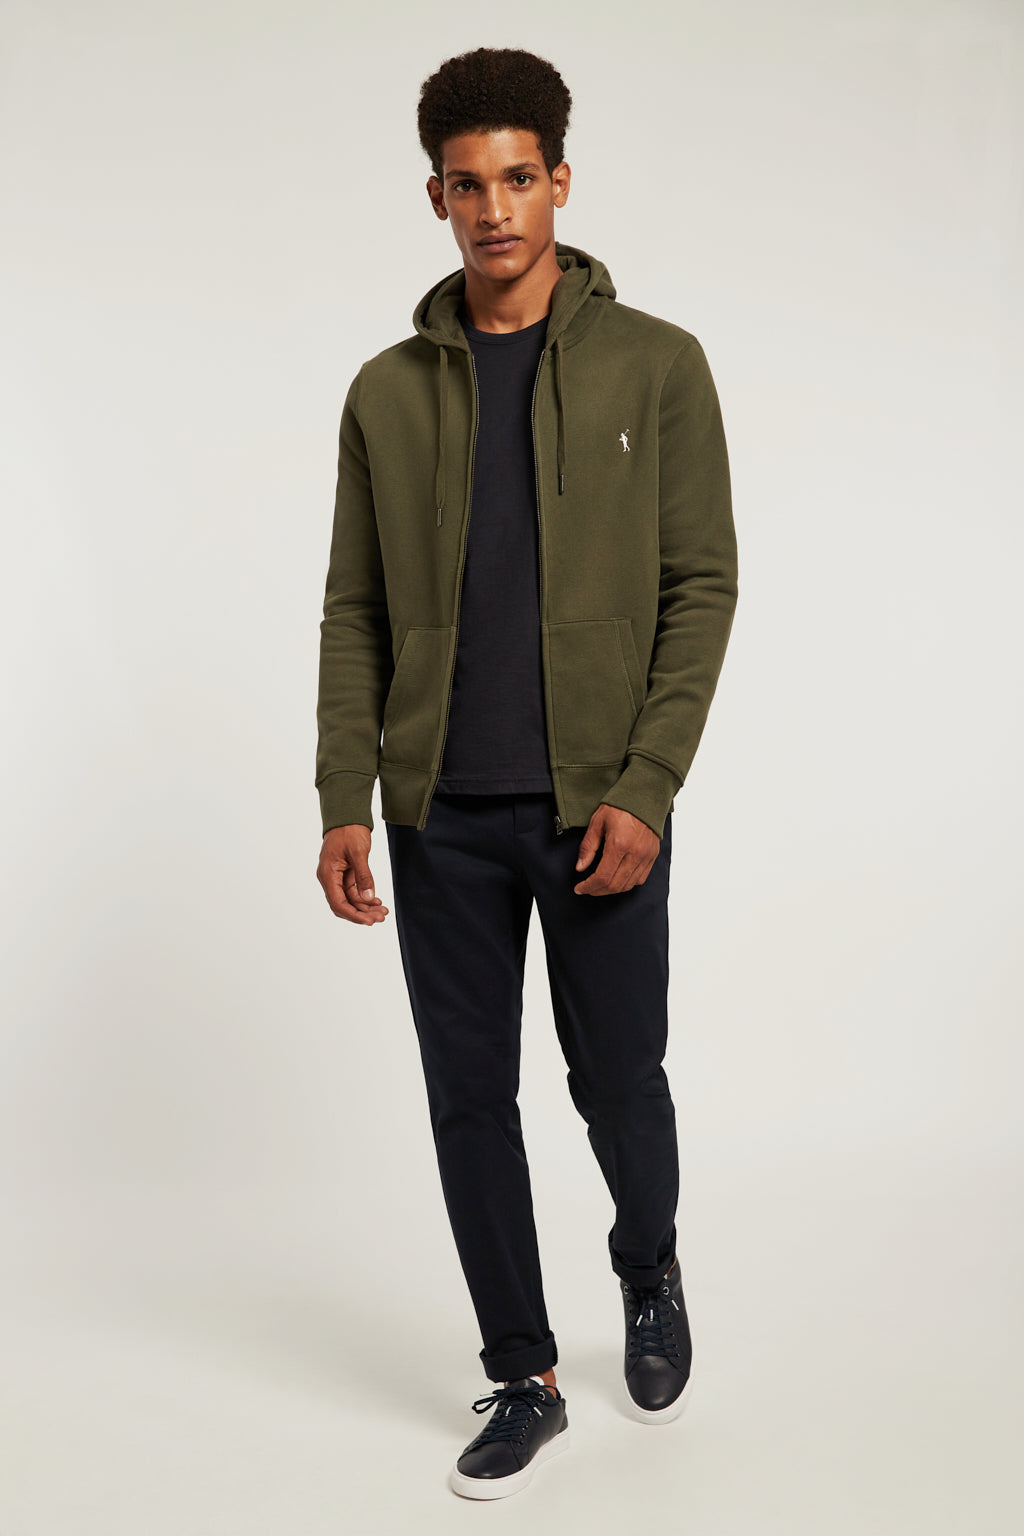 Khaki sweatshirt with zip closure and kangaroo pocket